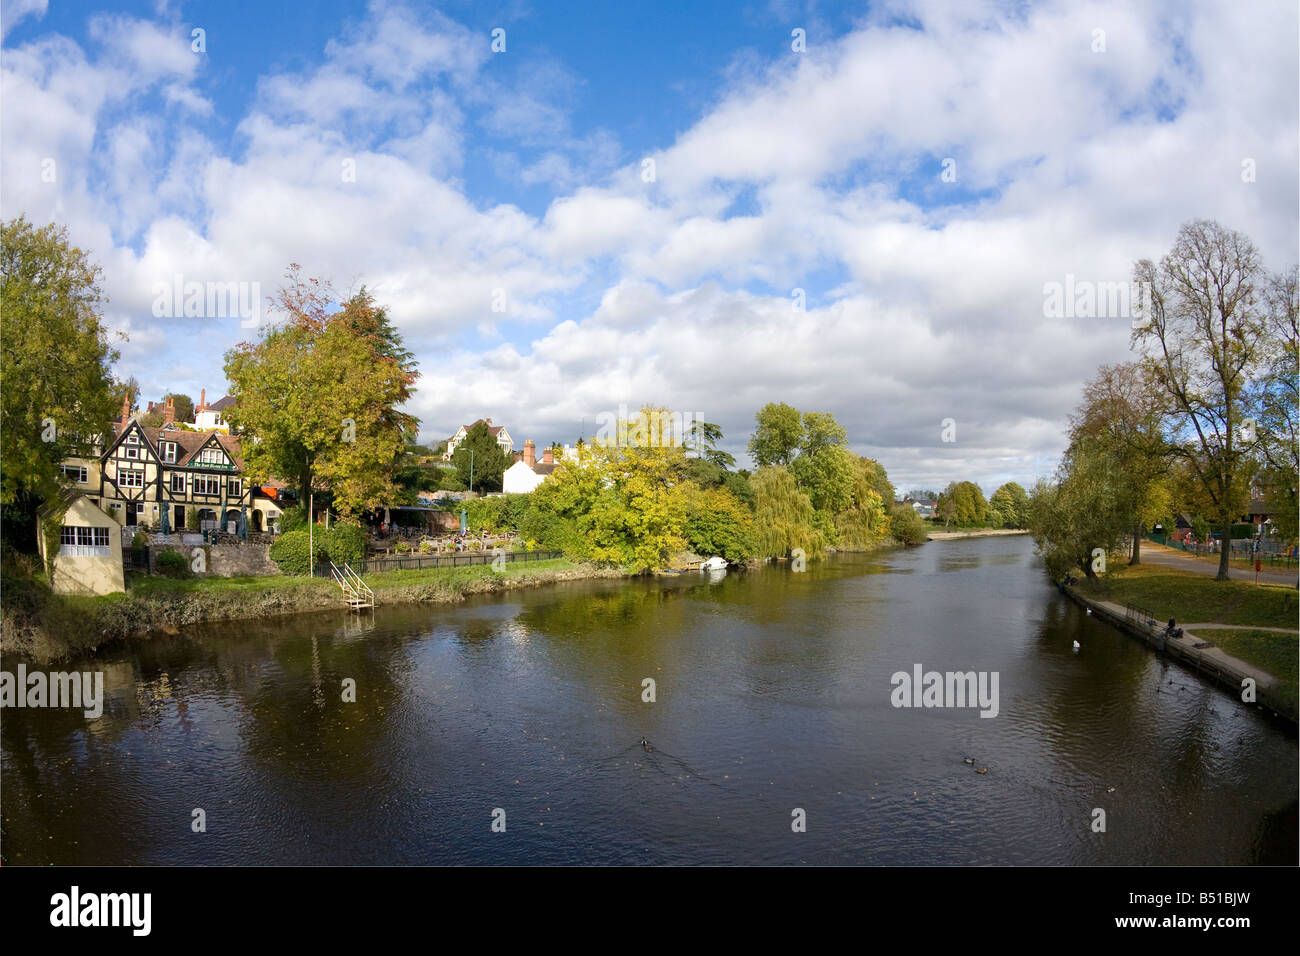 Boat House Inn overlooking the River Severn and the Quarry Park in Shrewsbury Shropshire England UK United Kingdom - Stock Image